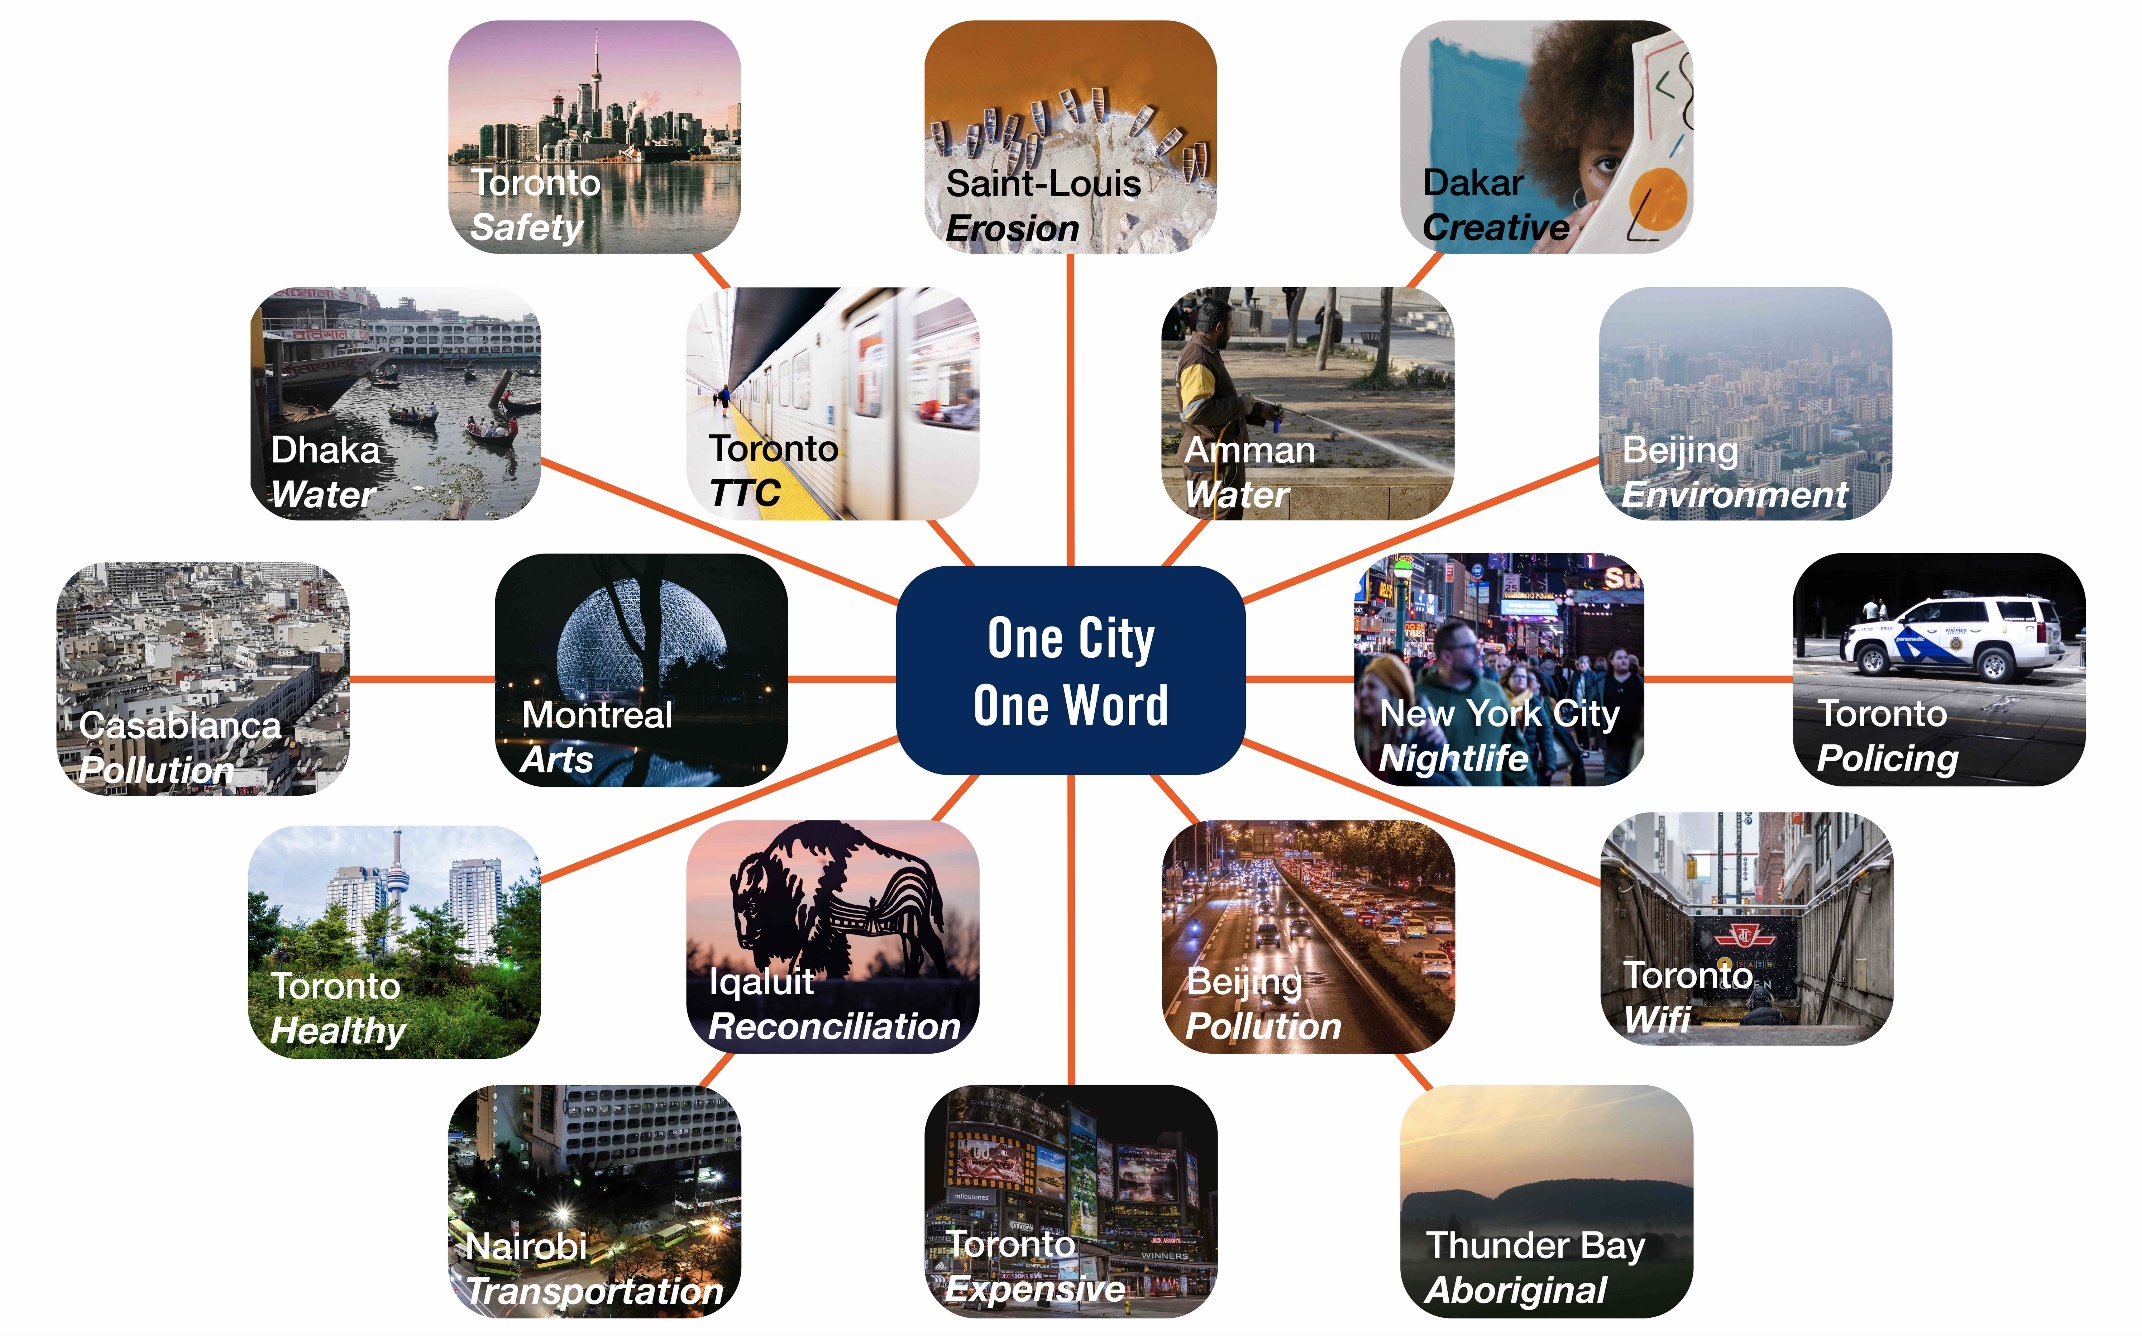 2019 One City, One Word Collective Visioning Exercise Product